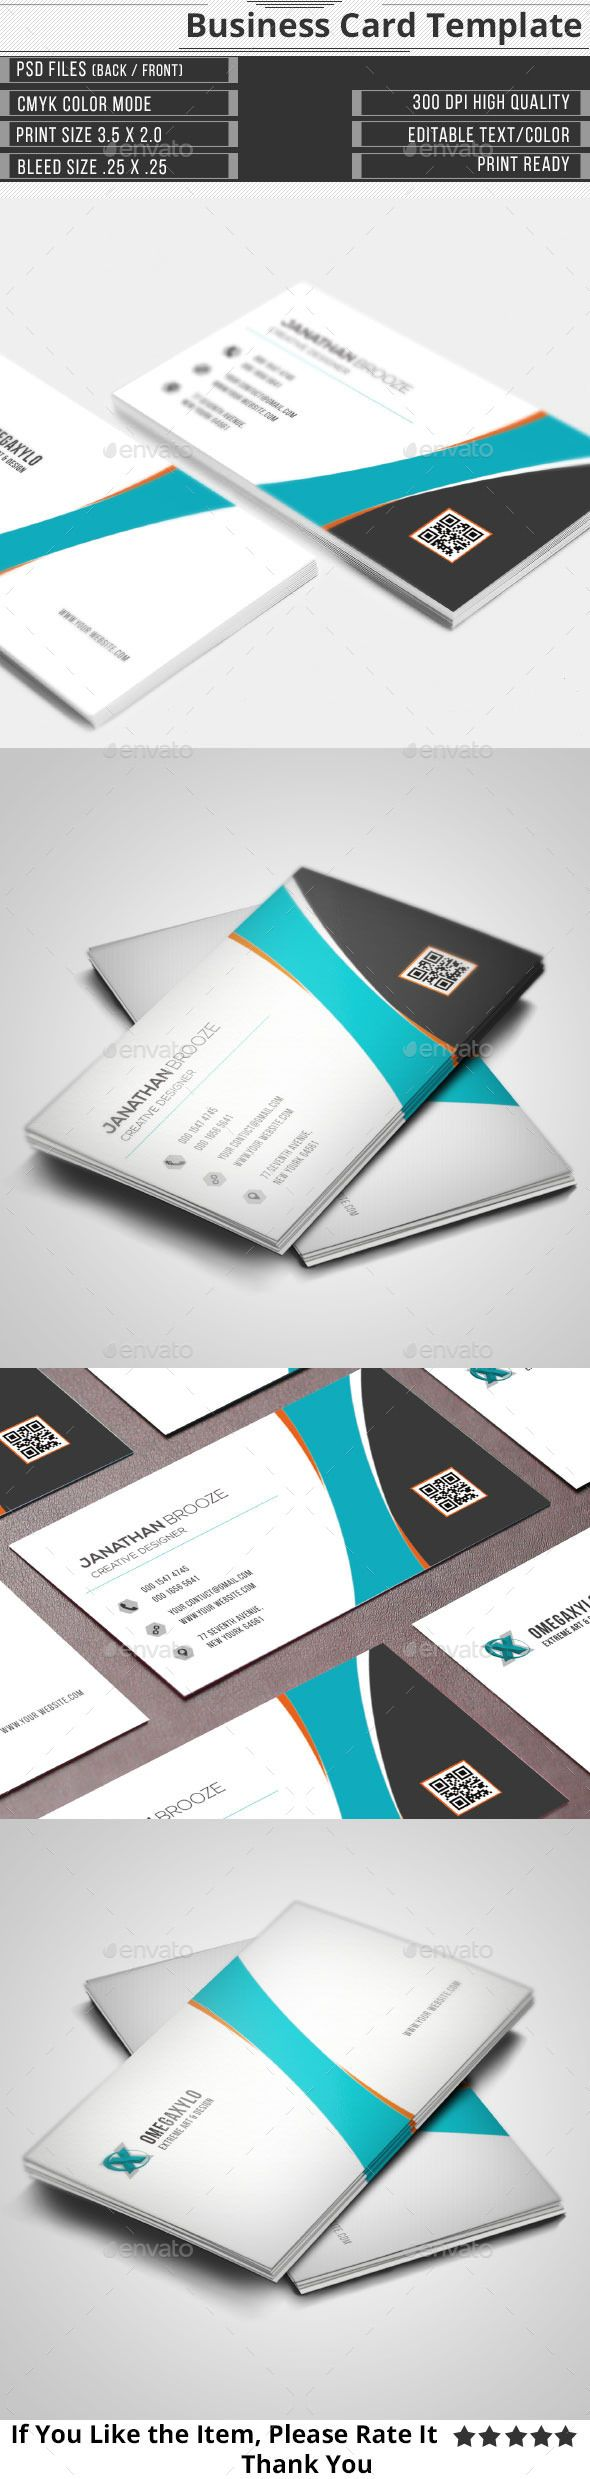 Sms business card image collections free business cards die besten 25 business card size ideen auf pinterest clean corporate business card template download httpgraphicriver magicingreecefo Images